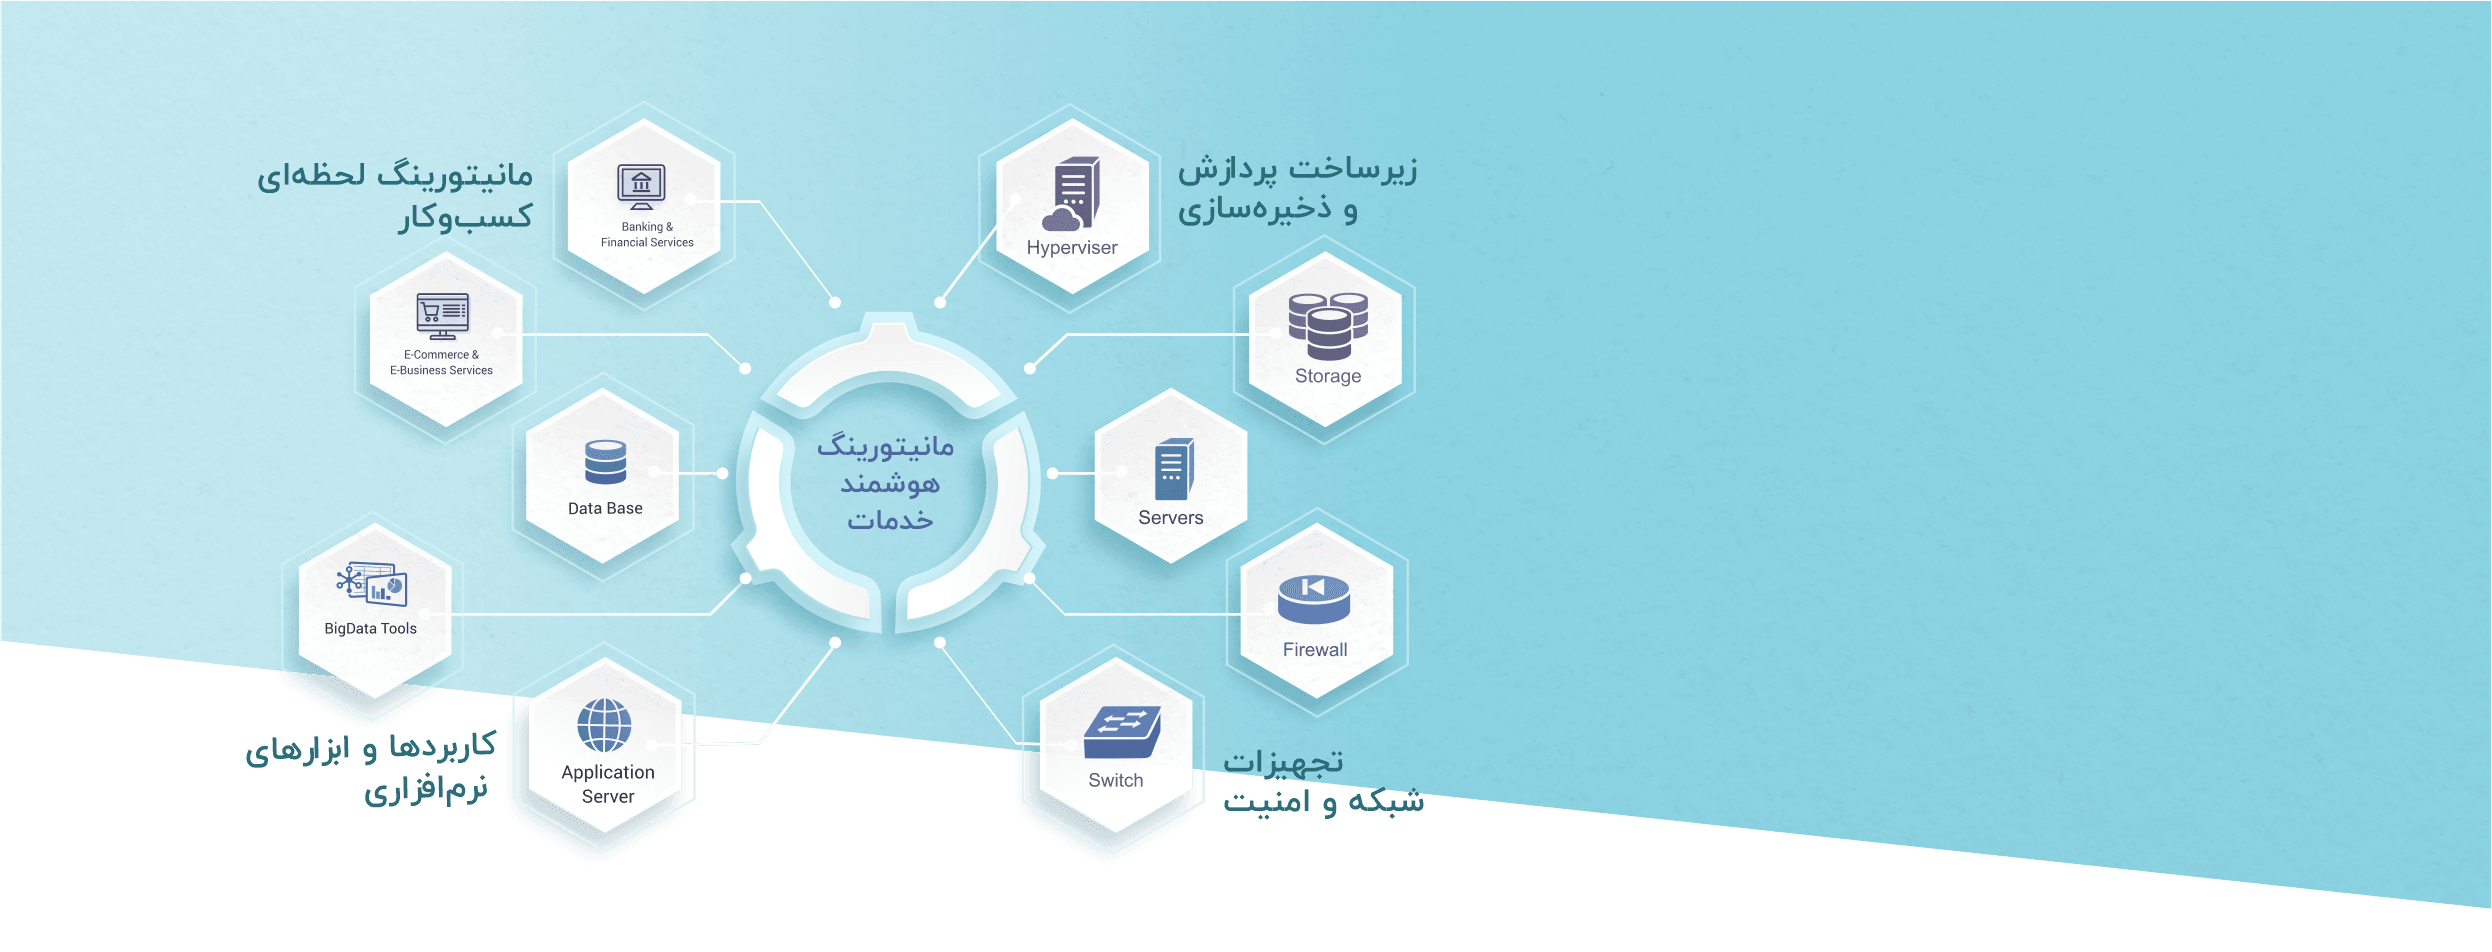 http://paiotech.ir/services/#operation-monitoring